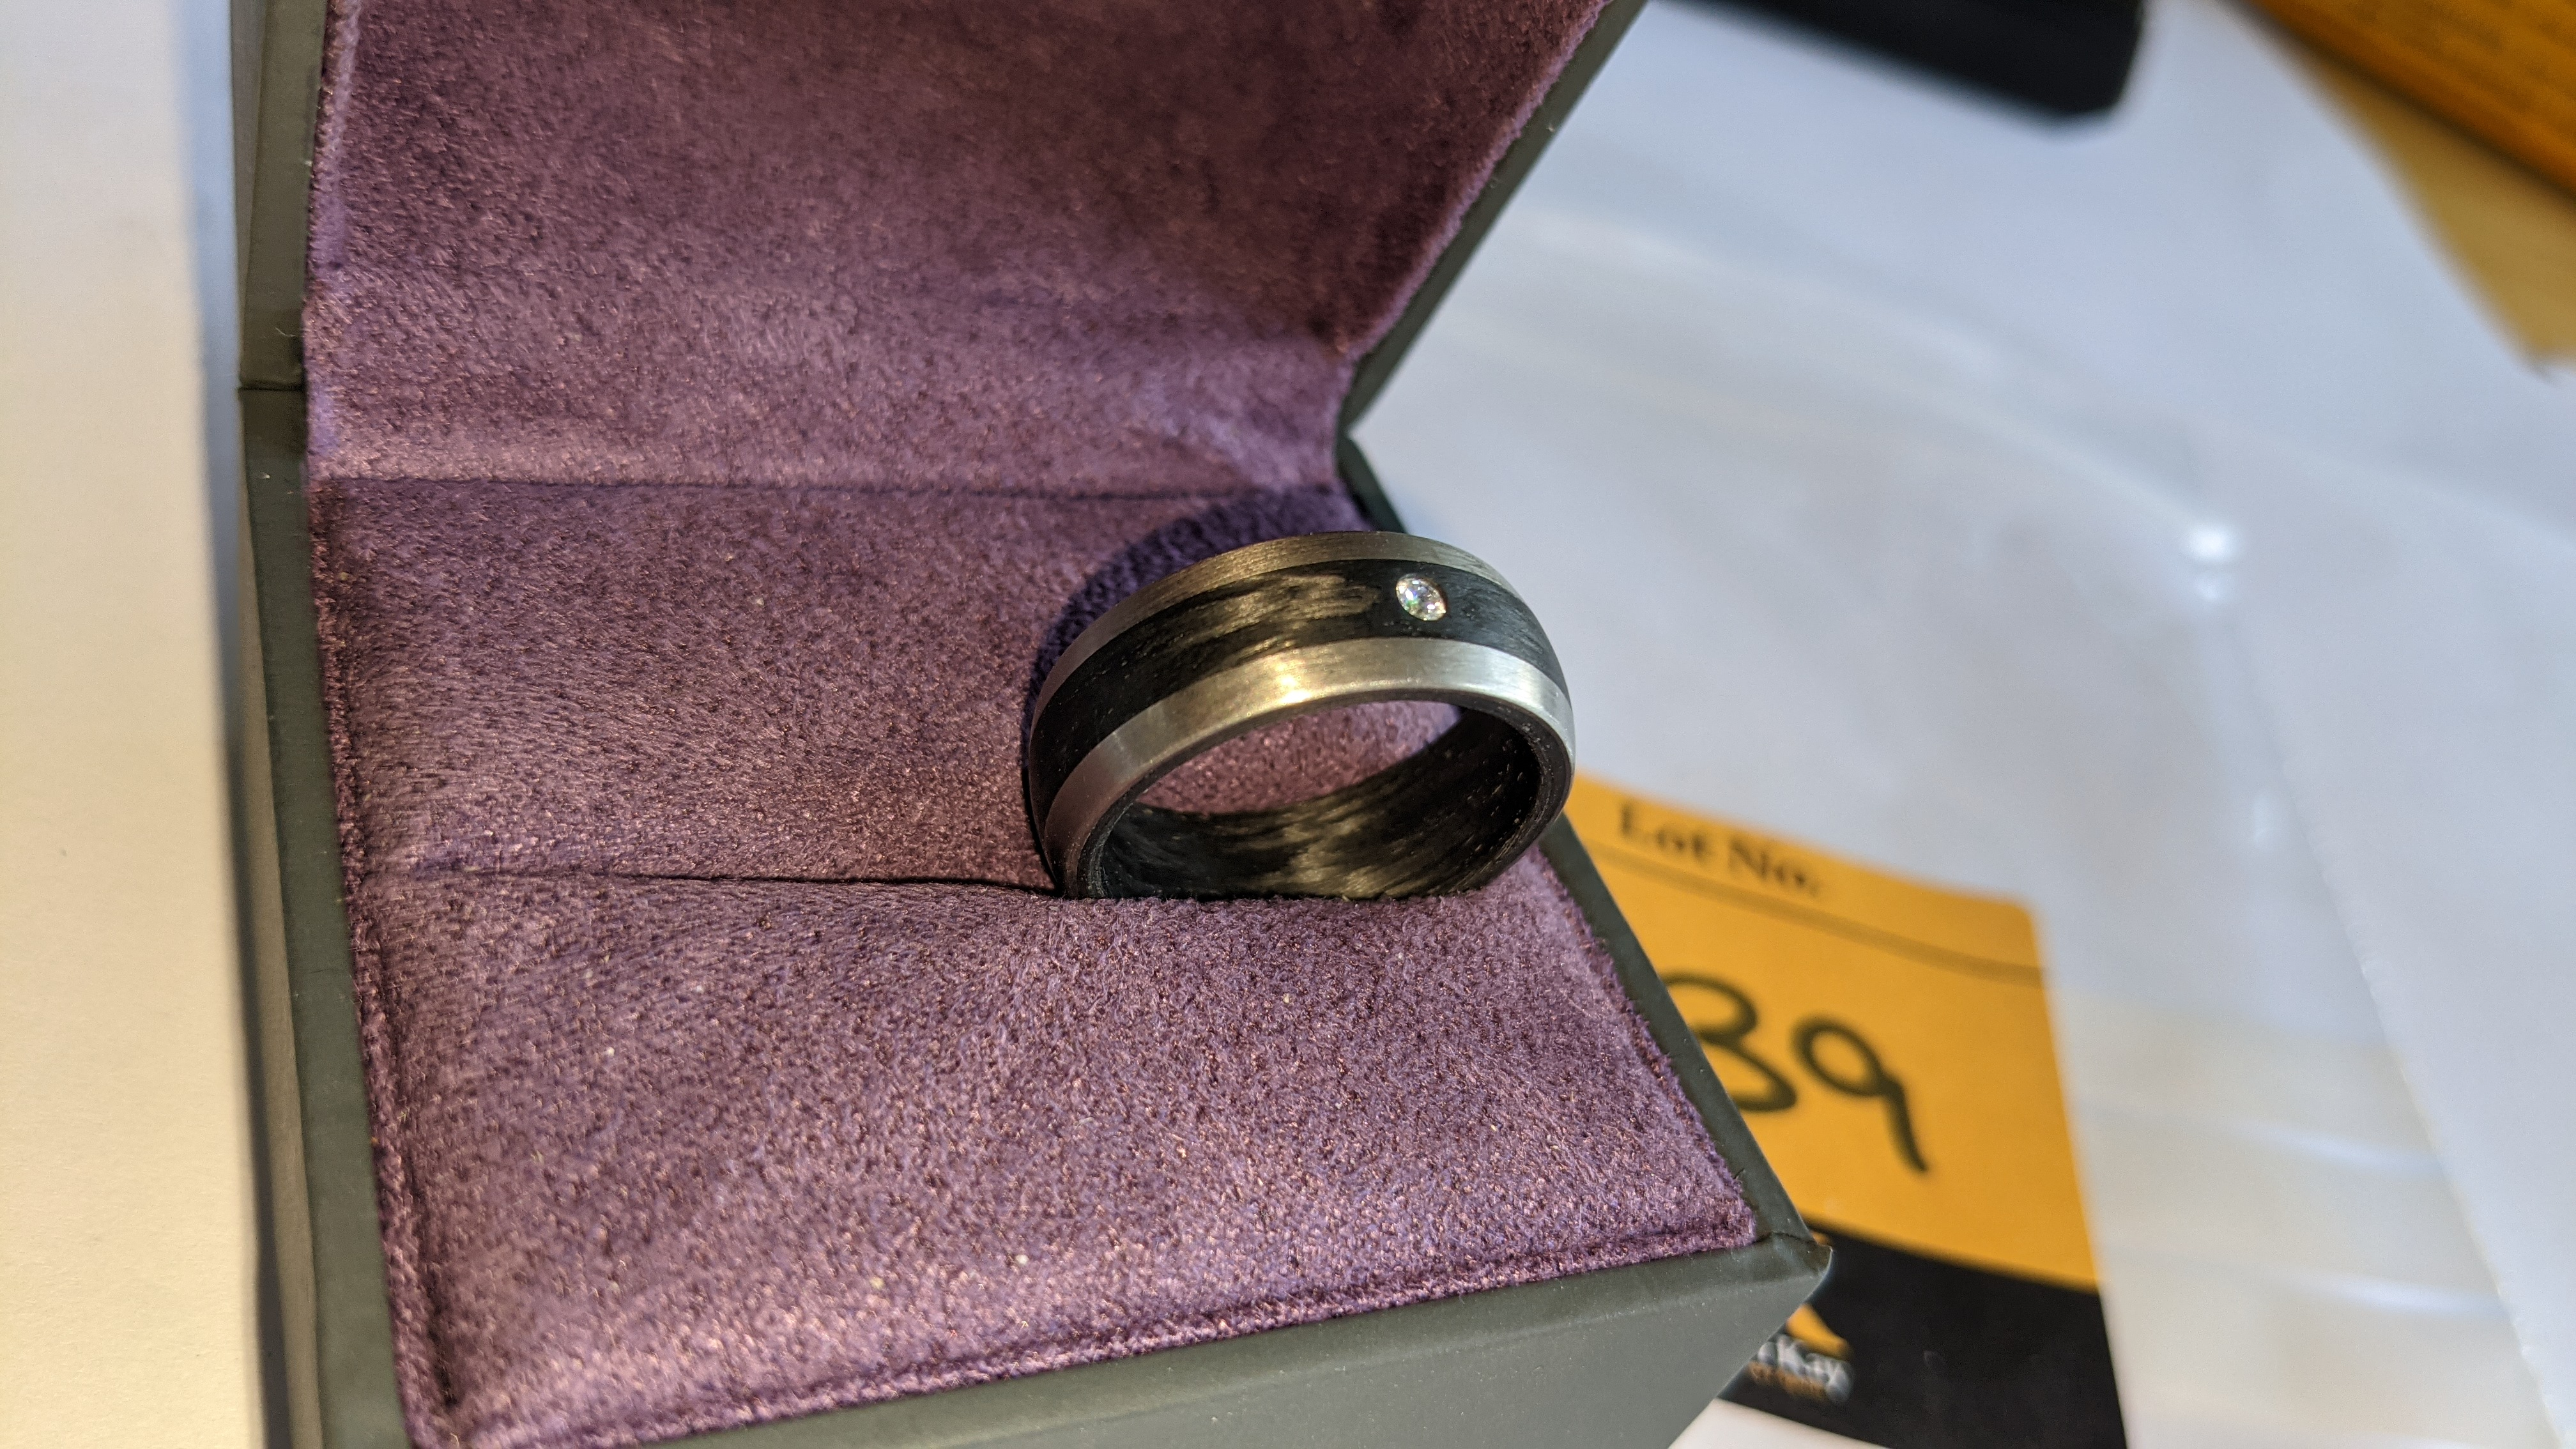 Ring understood to be made of Palladium, carbon & diamond - no price sticker or labelling on this ri - Image 5 of 13